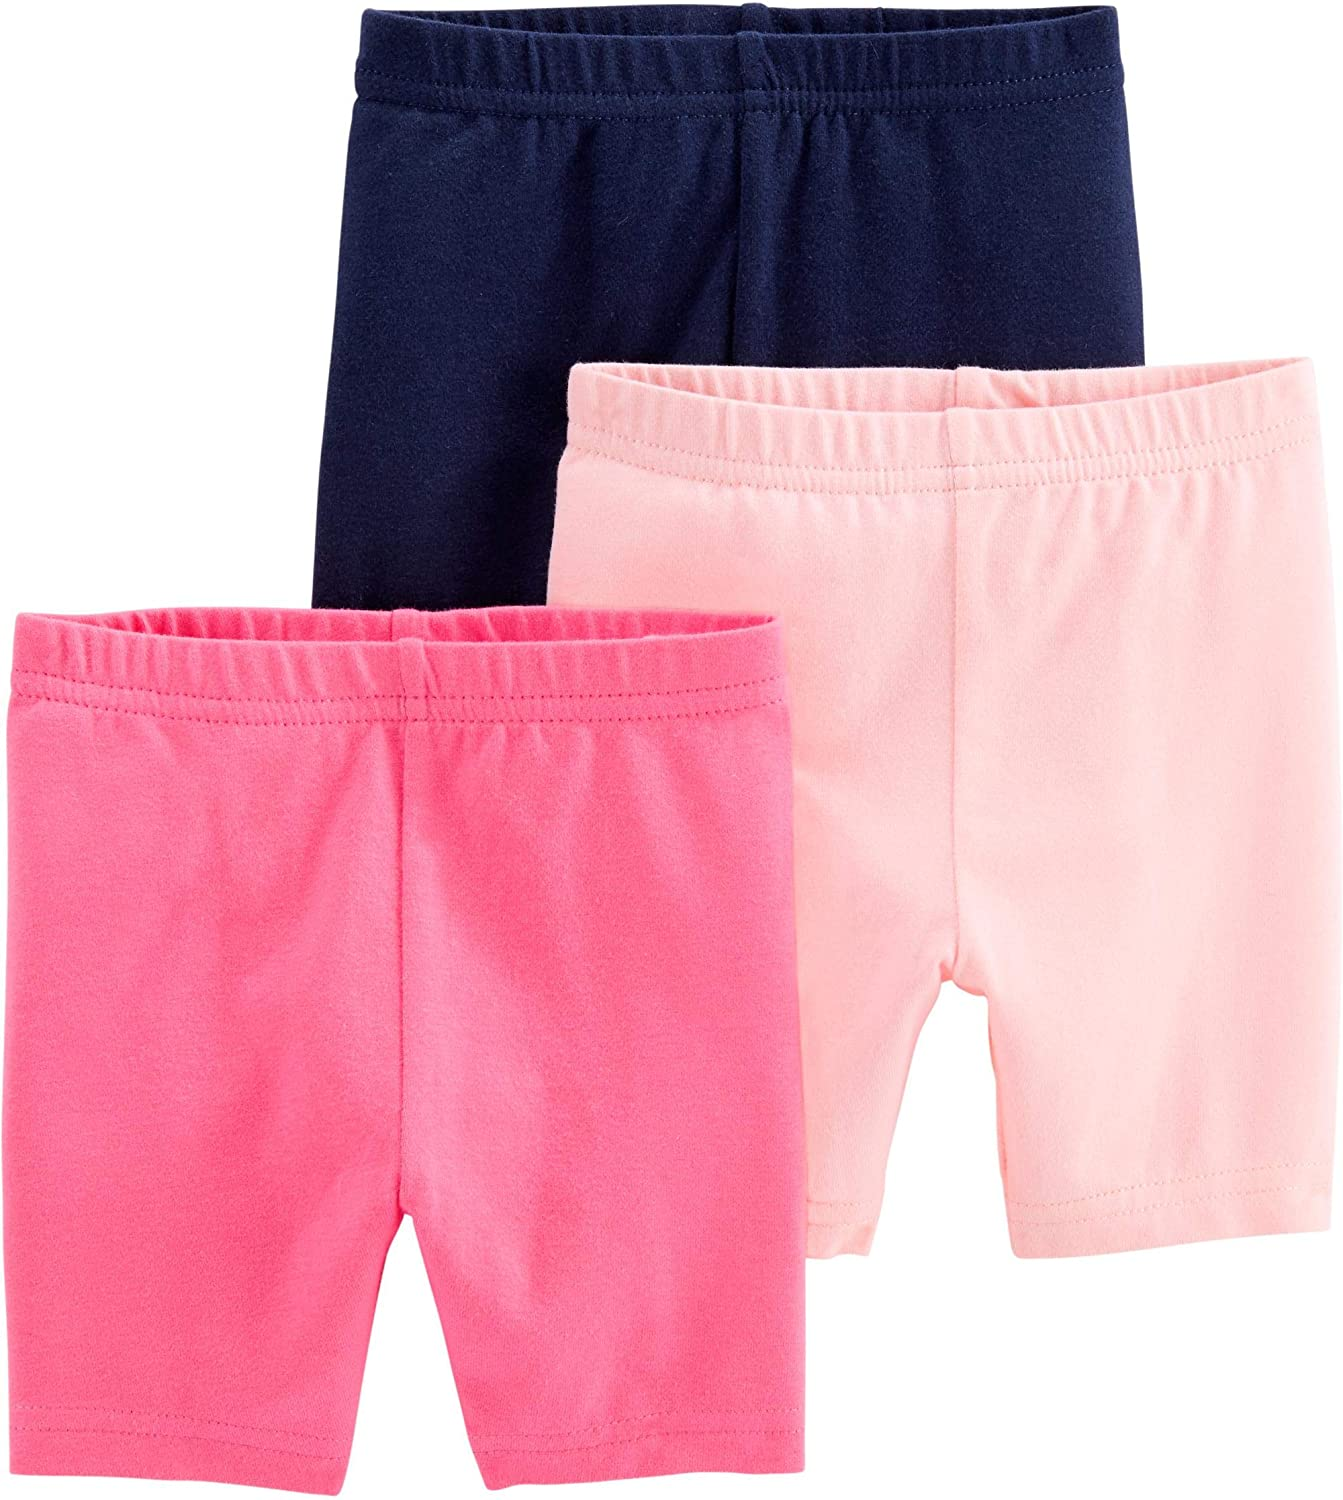 Simple Joys by Carters Girls 3-Pack Bike Shorts